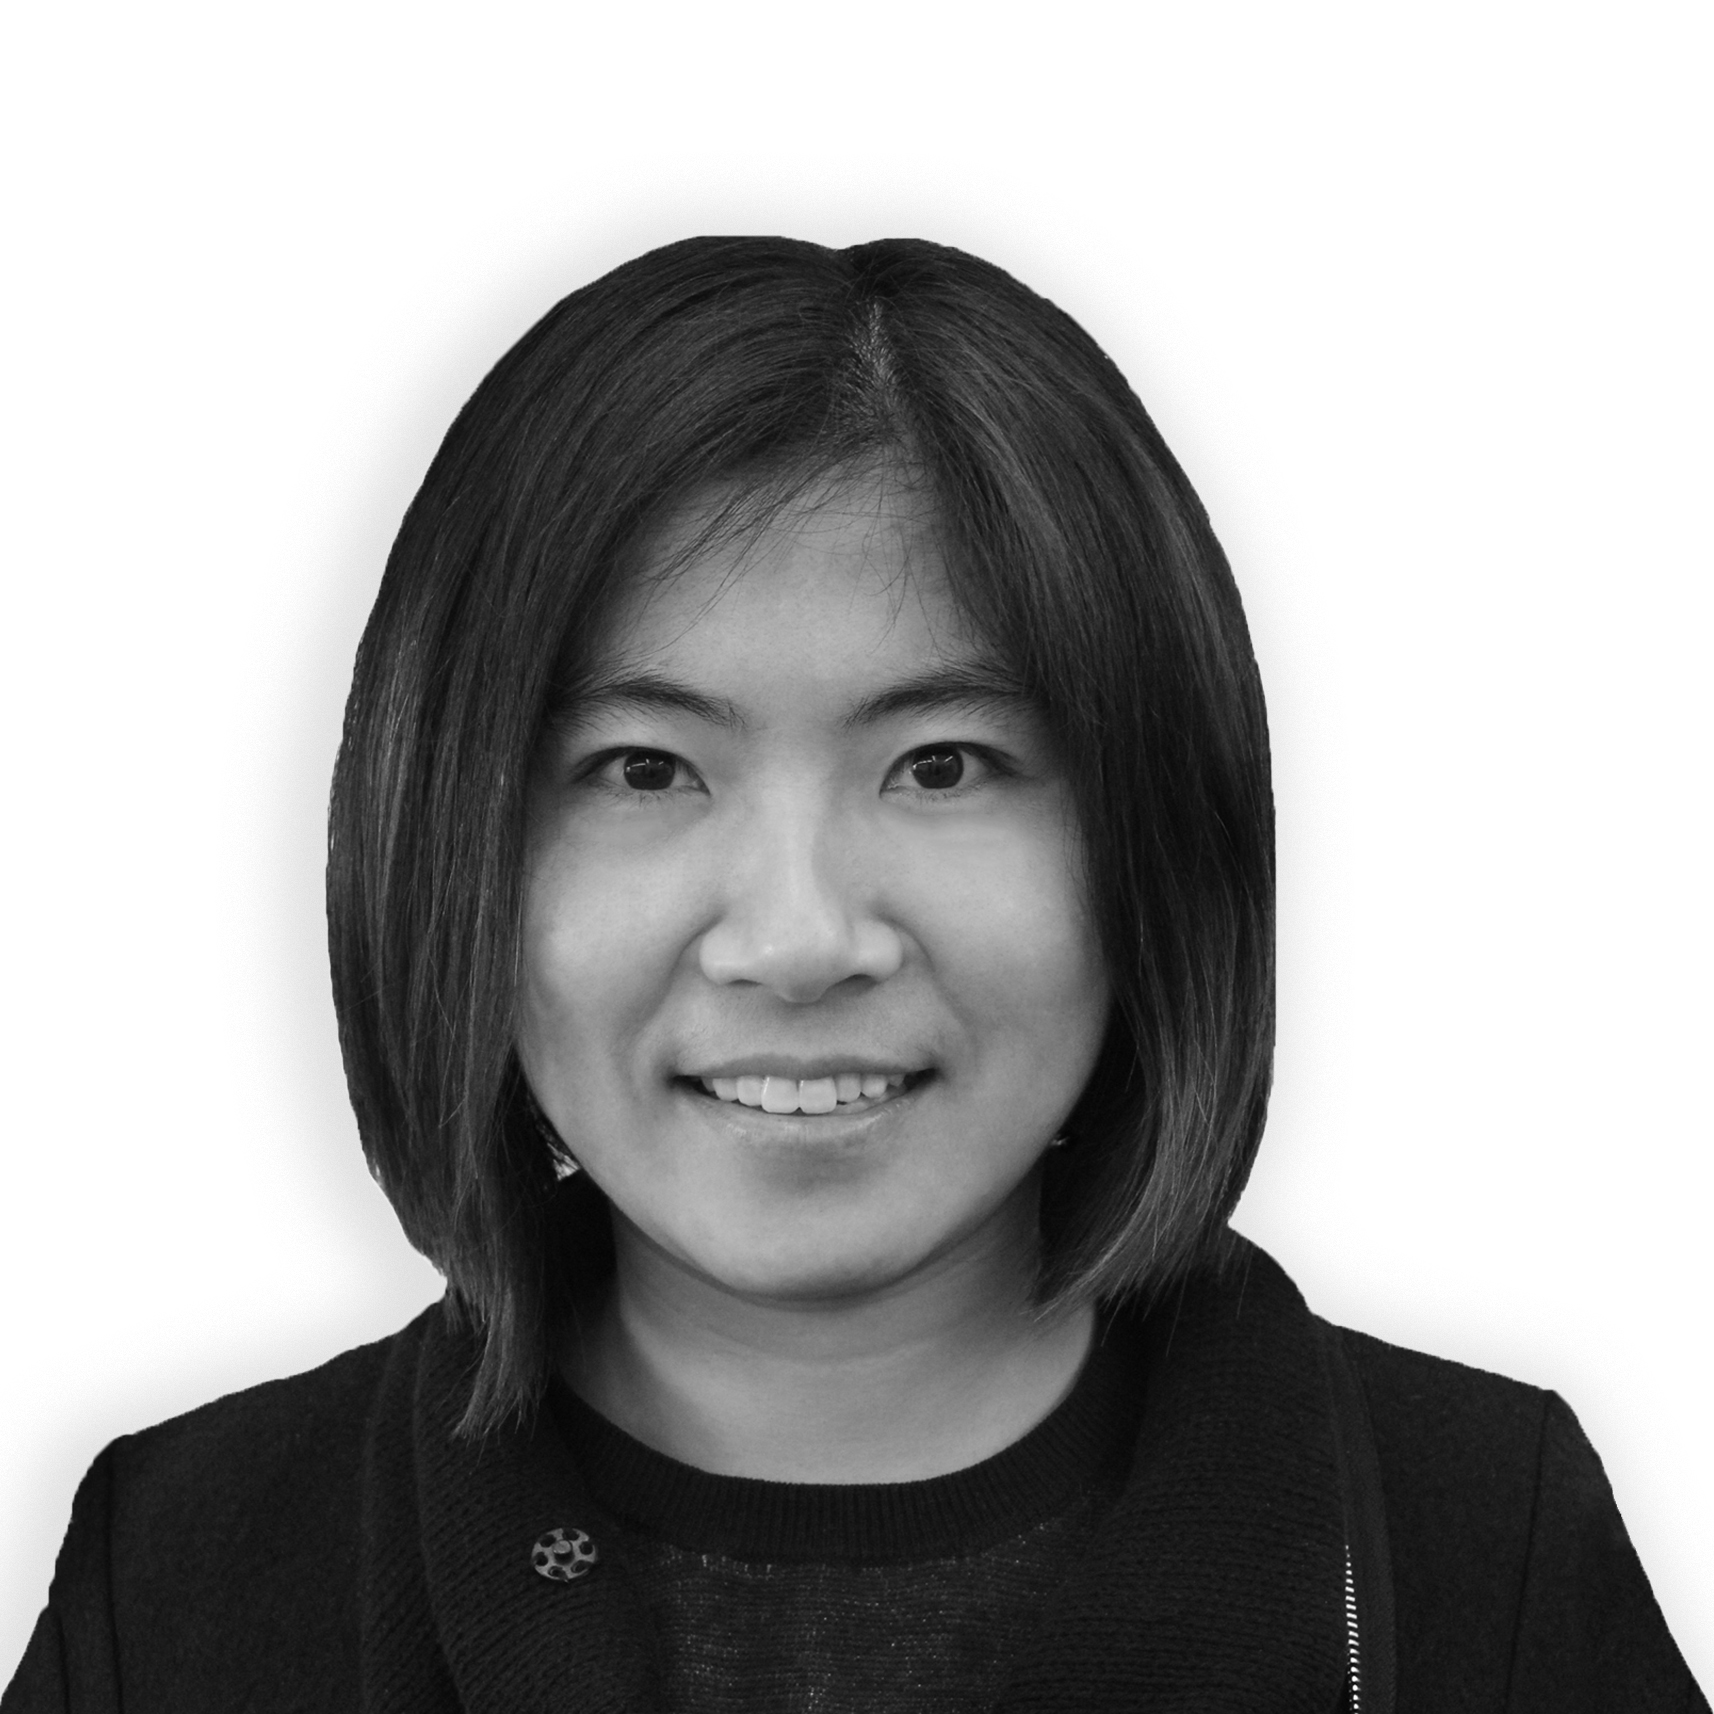 Nancy is a soft goods designer located in Shenzhen, China. She assists sample development with the factories and, helps source materials and trim.   Favorite past time: Reading and listening to music